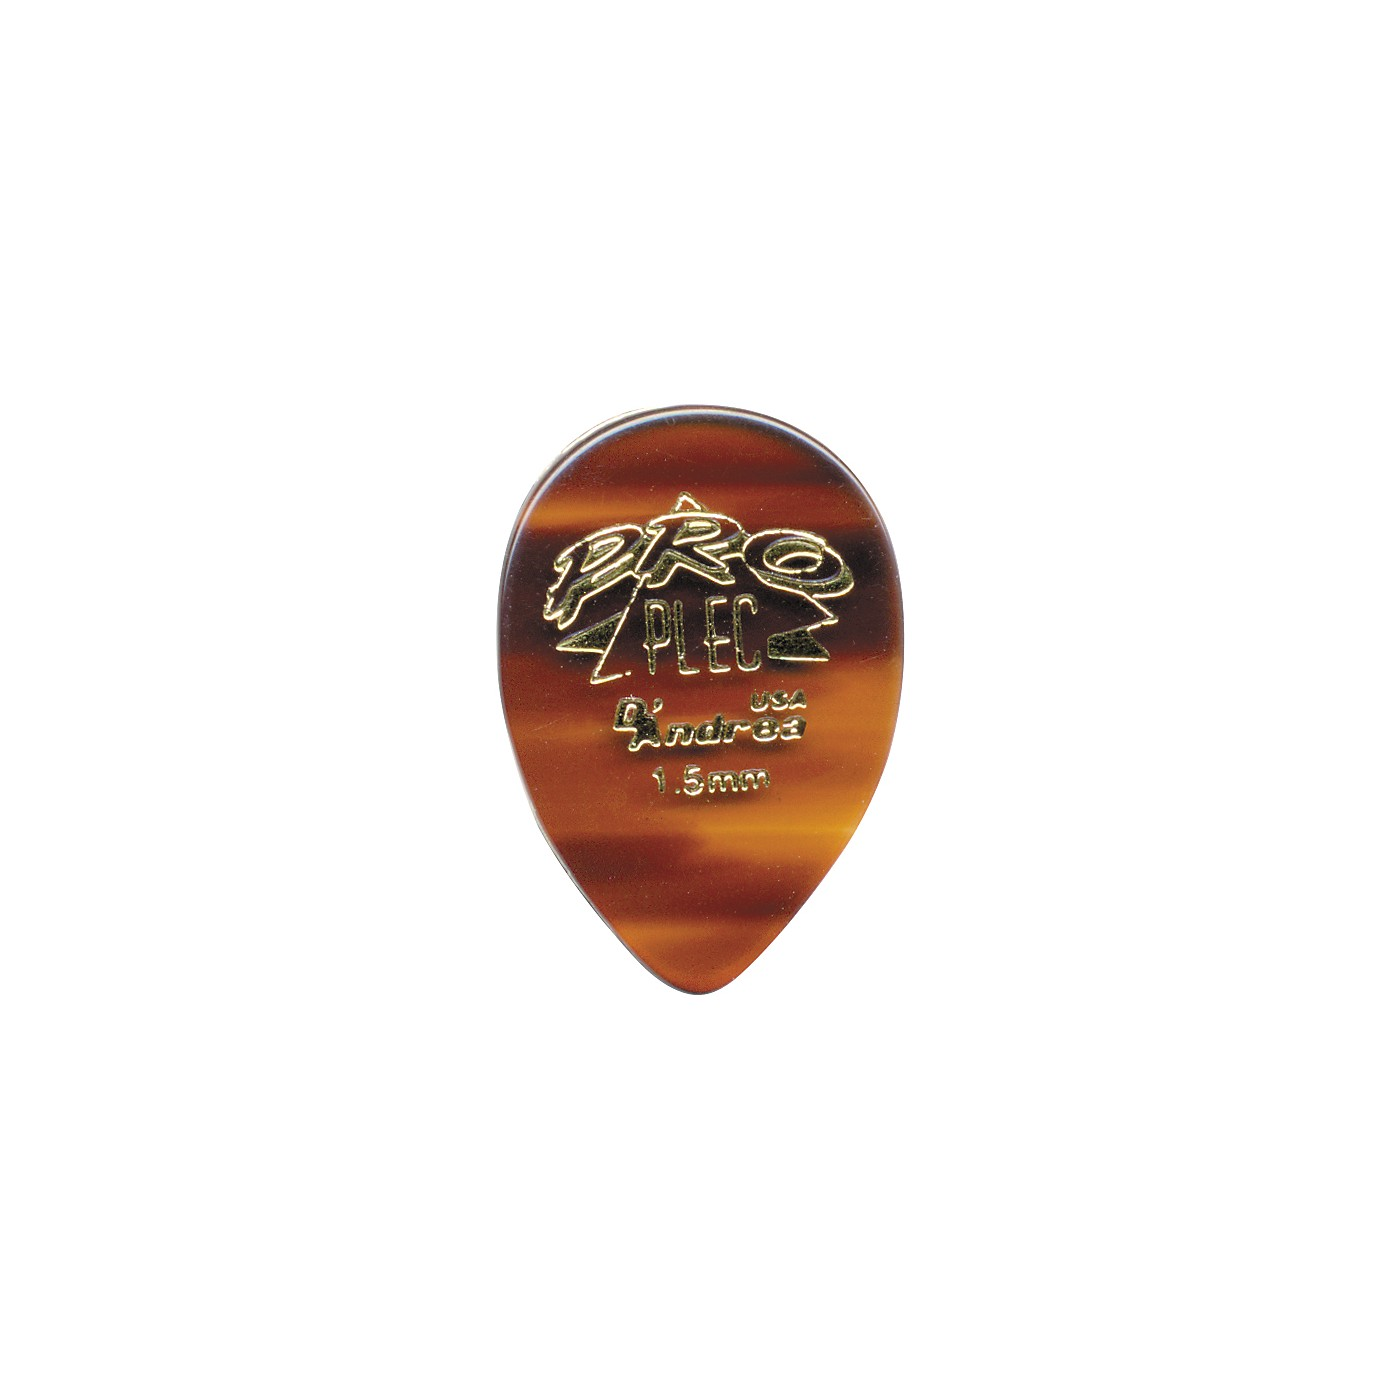 D'Andrea Pro Plec Guitar Picks Small Pointed Teardrop - One Dozen thumbnail